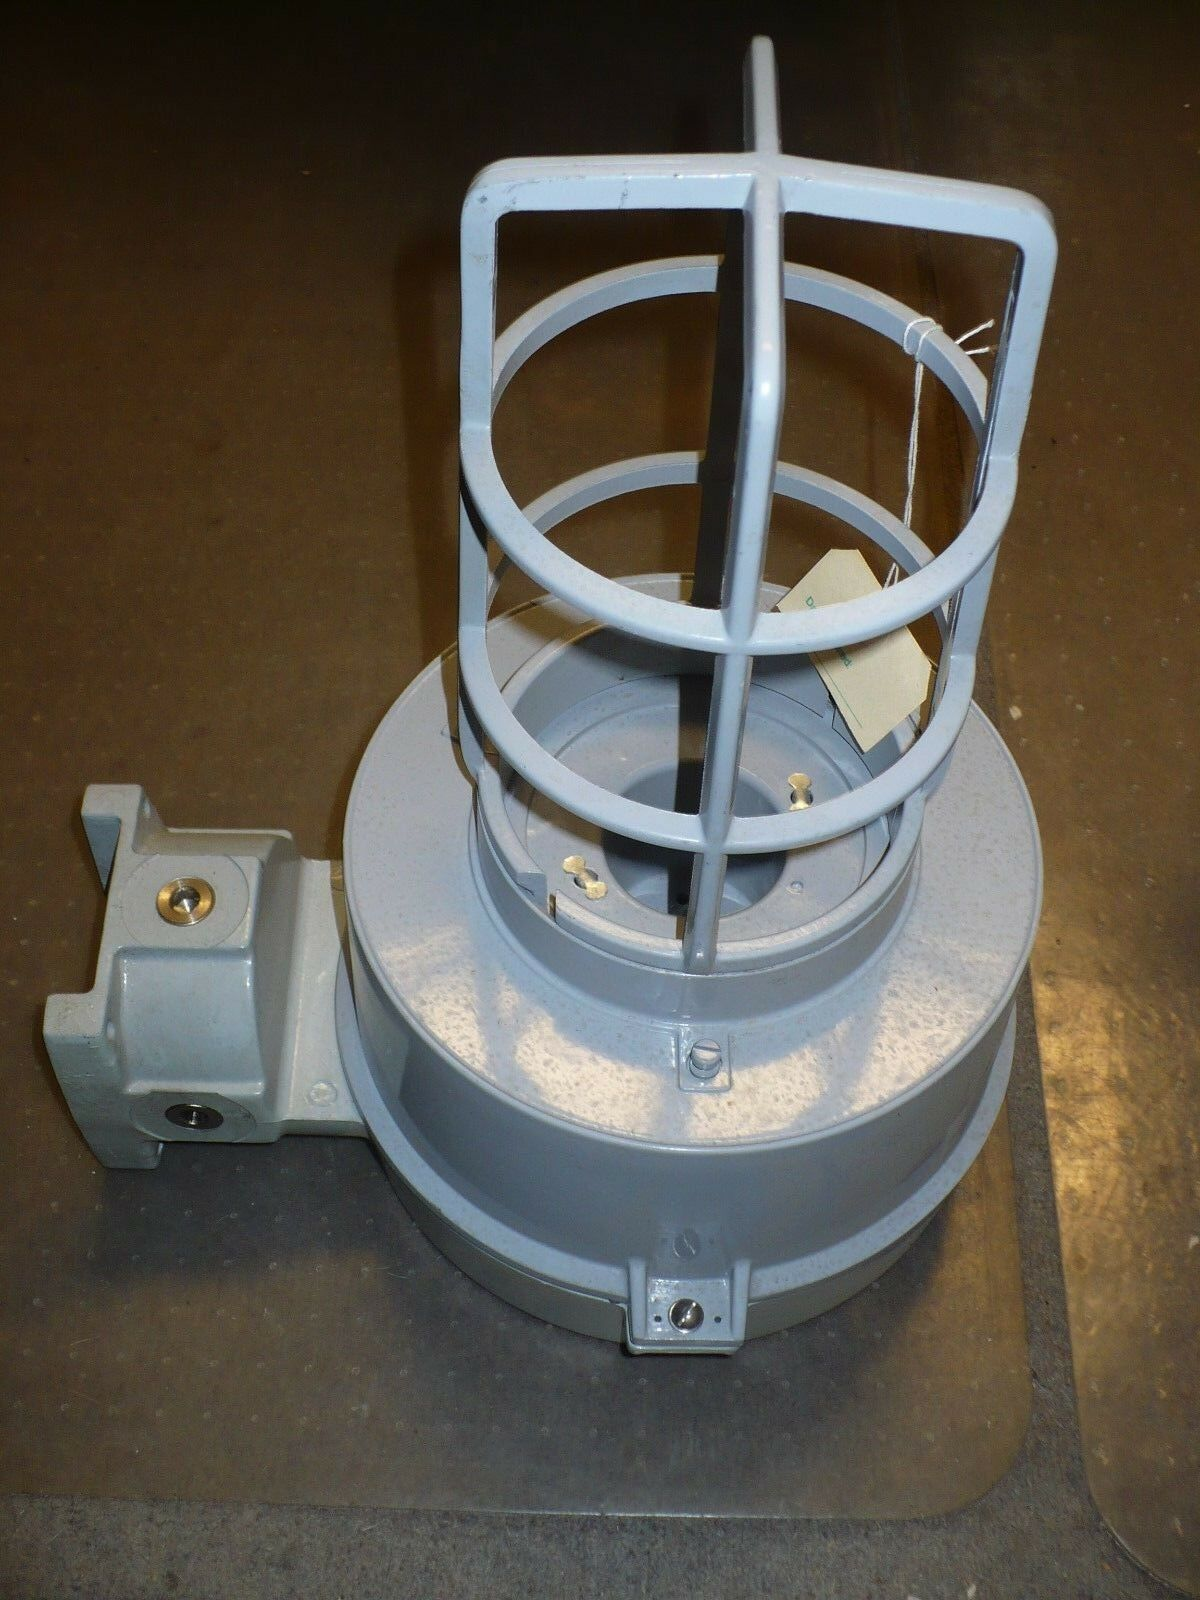 Cooper crouse hinds vmv series light fixture housing only picture 1 of 2 arubaitofo Gallery